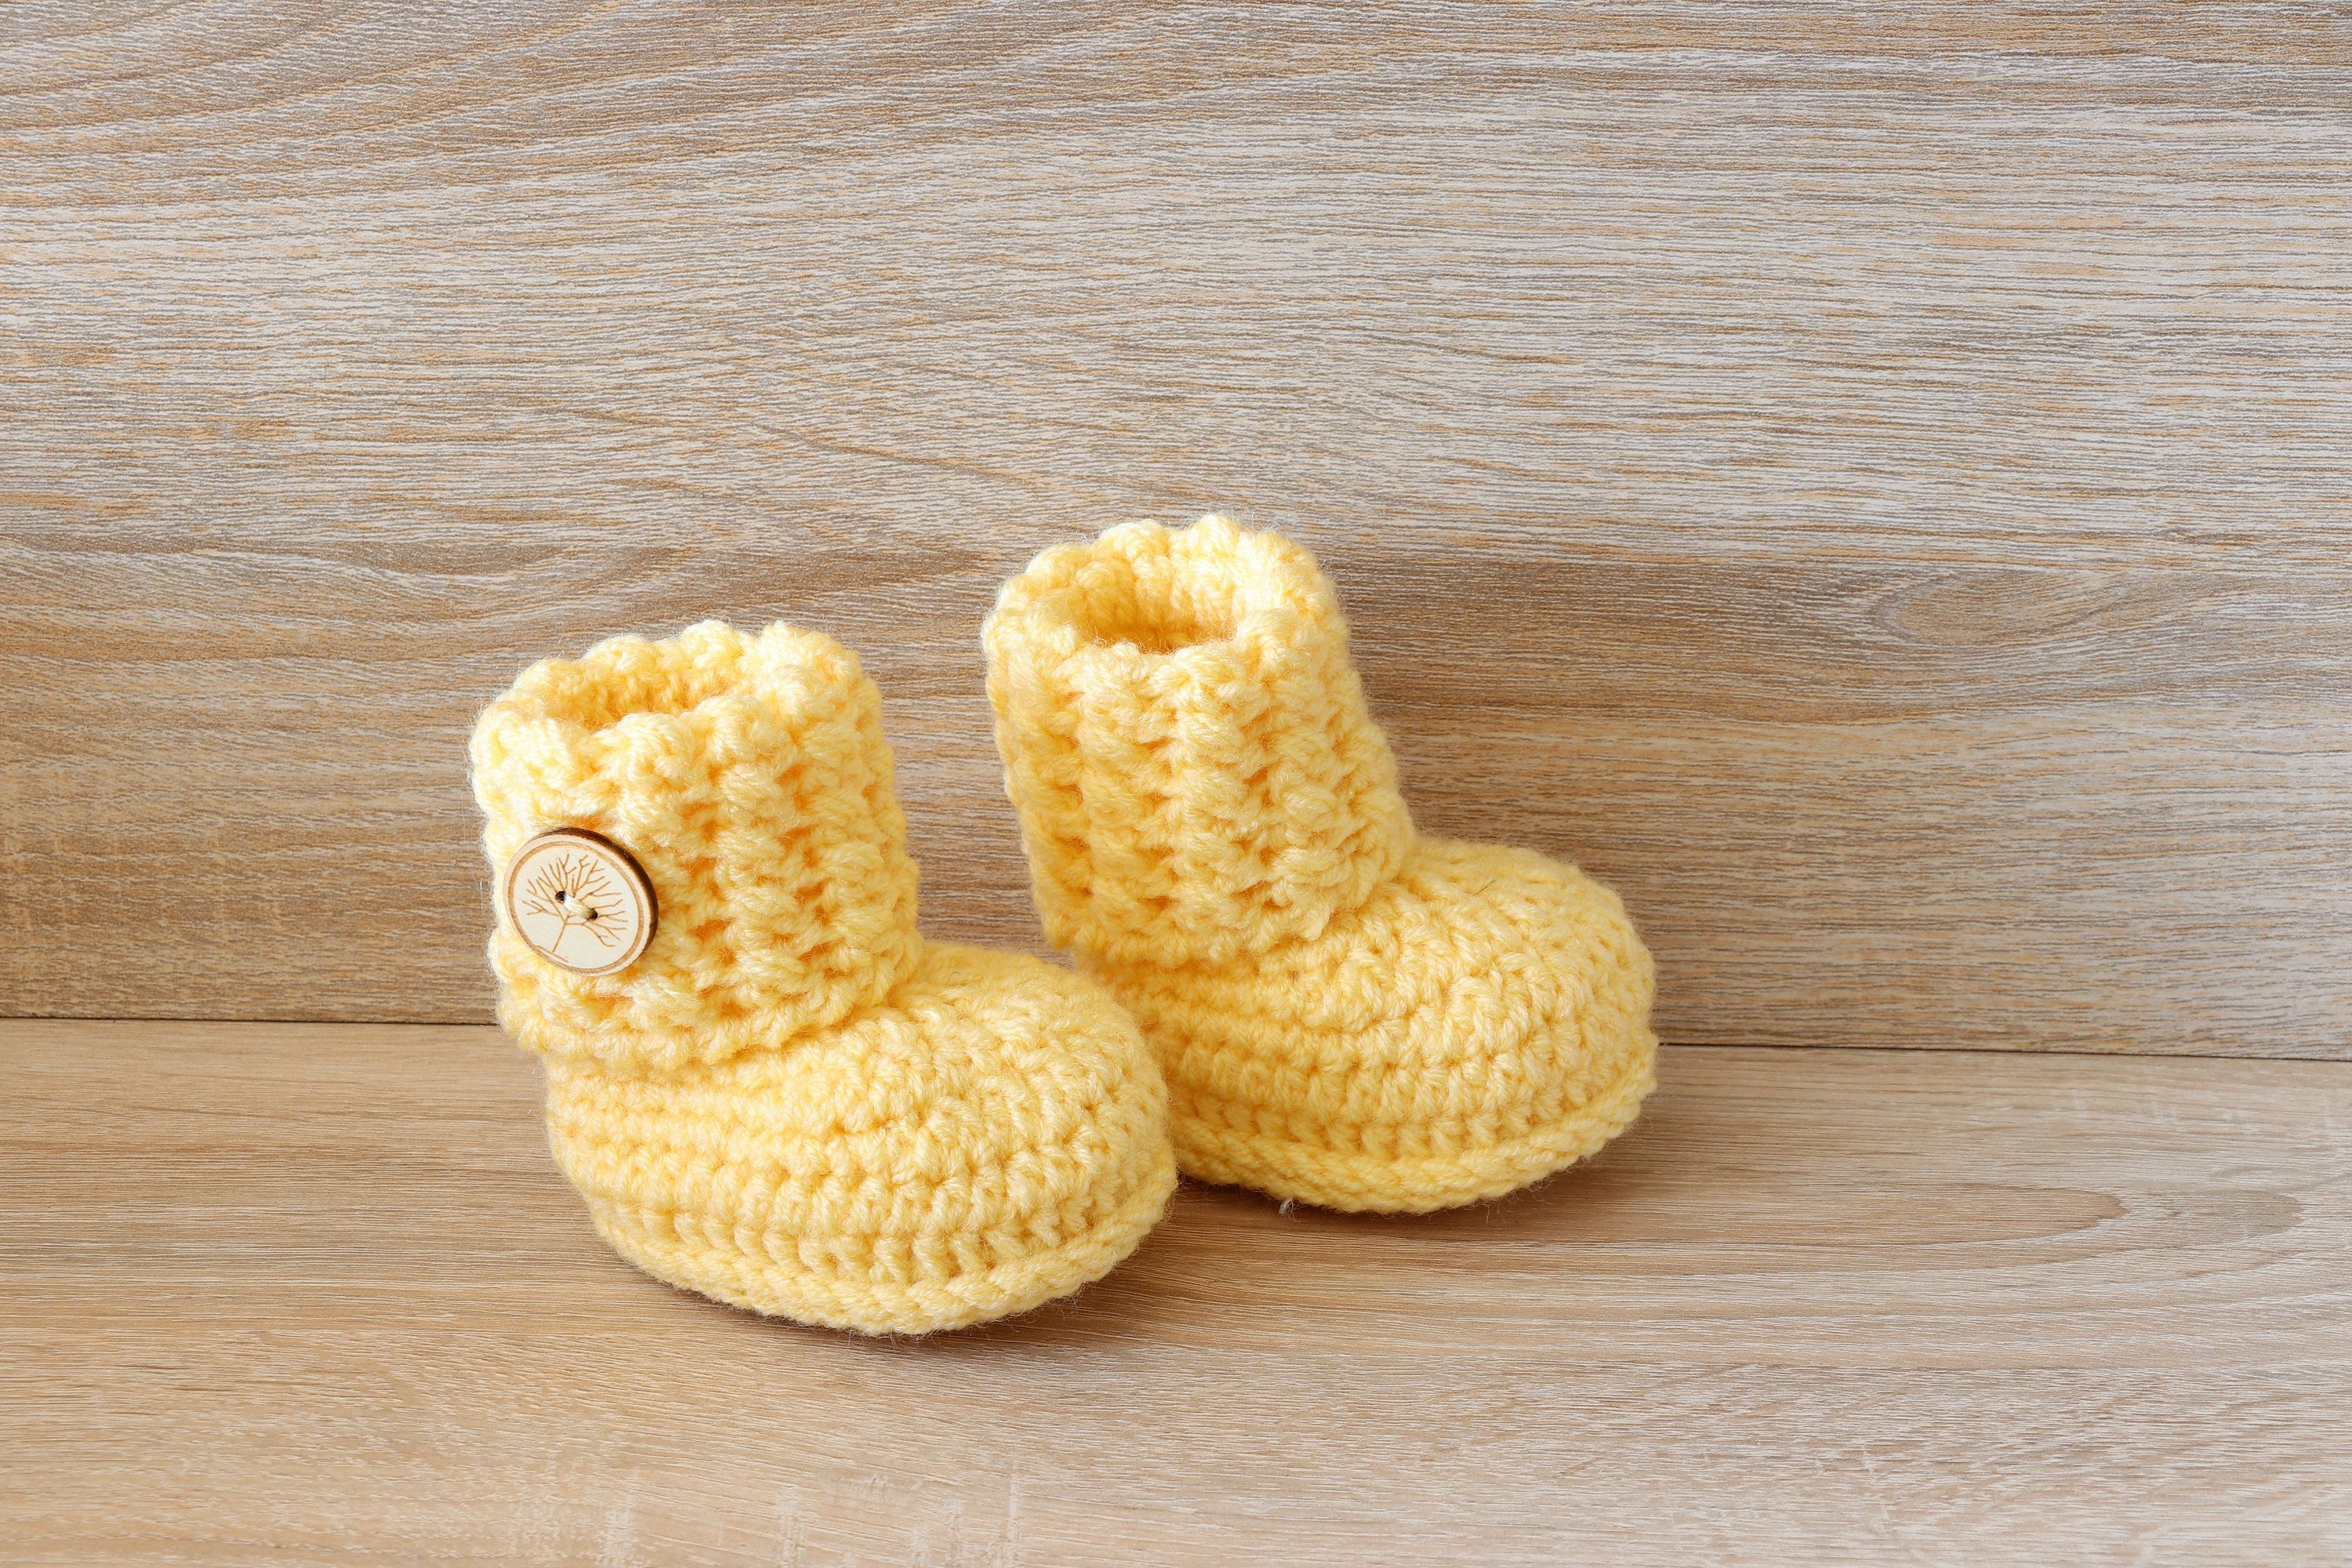 knitted baby clothes winter baby boots Navy blue Faux fur baby booties with sole Newborn baby shoes